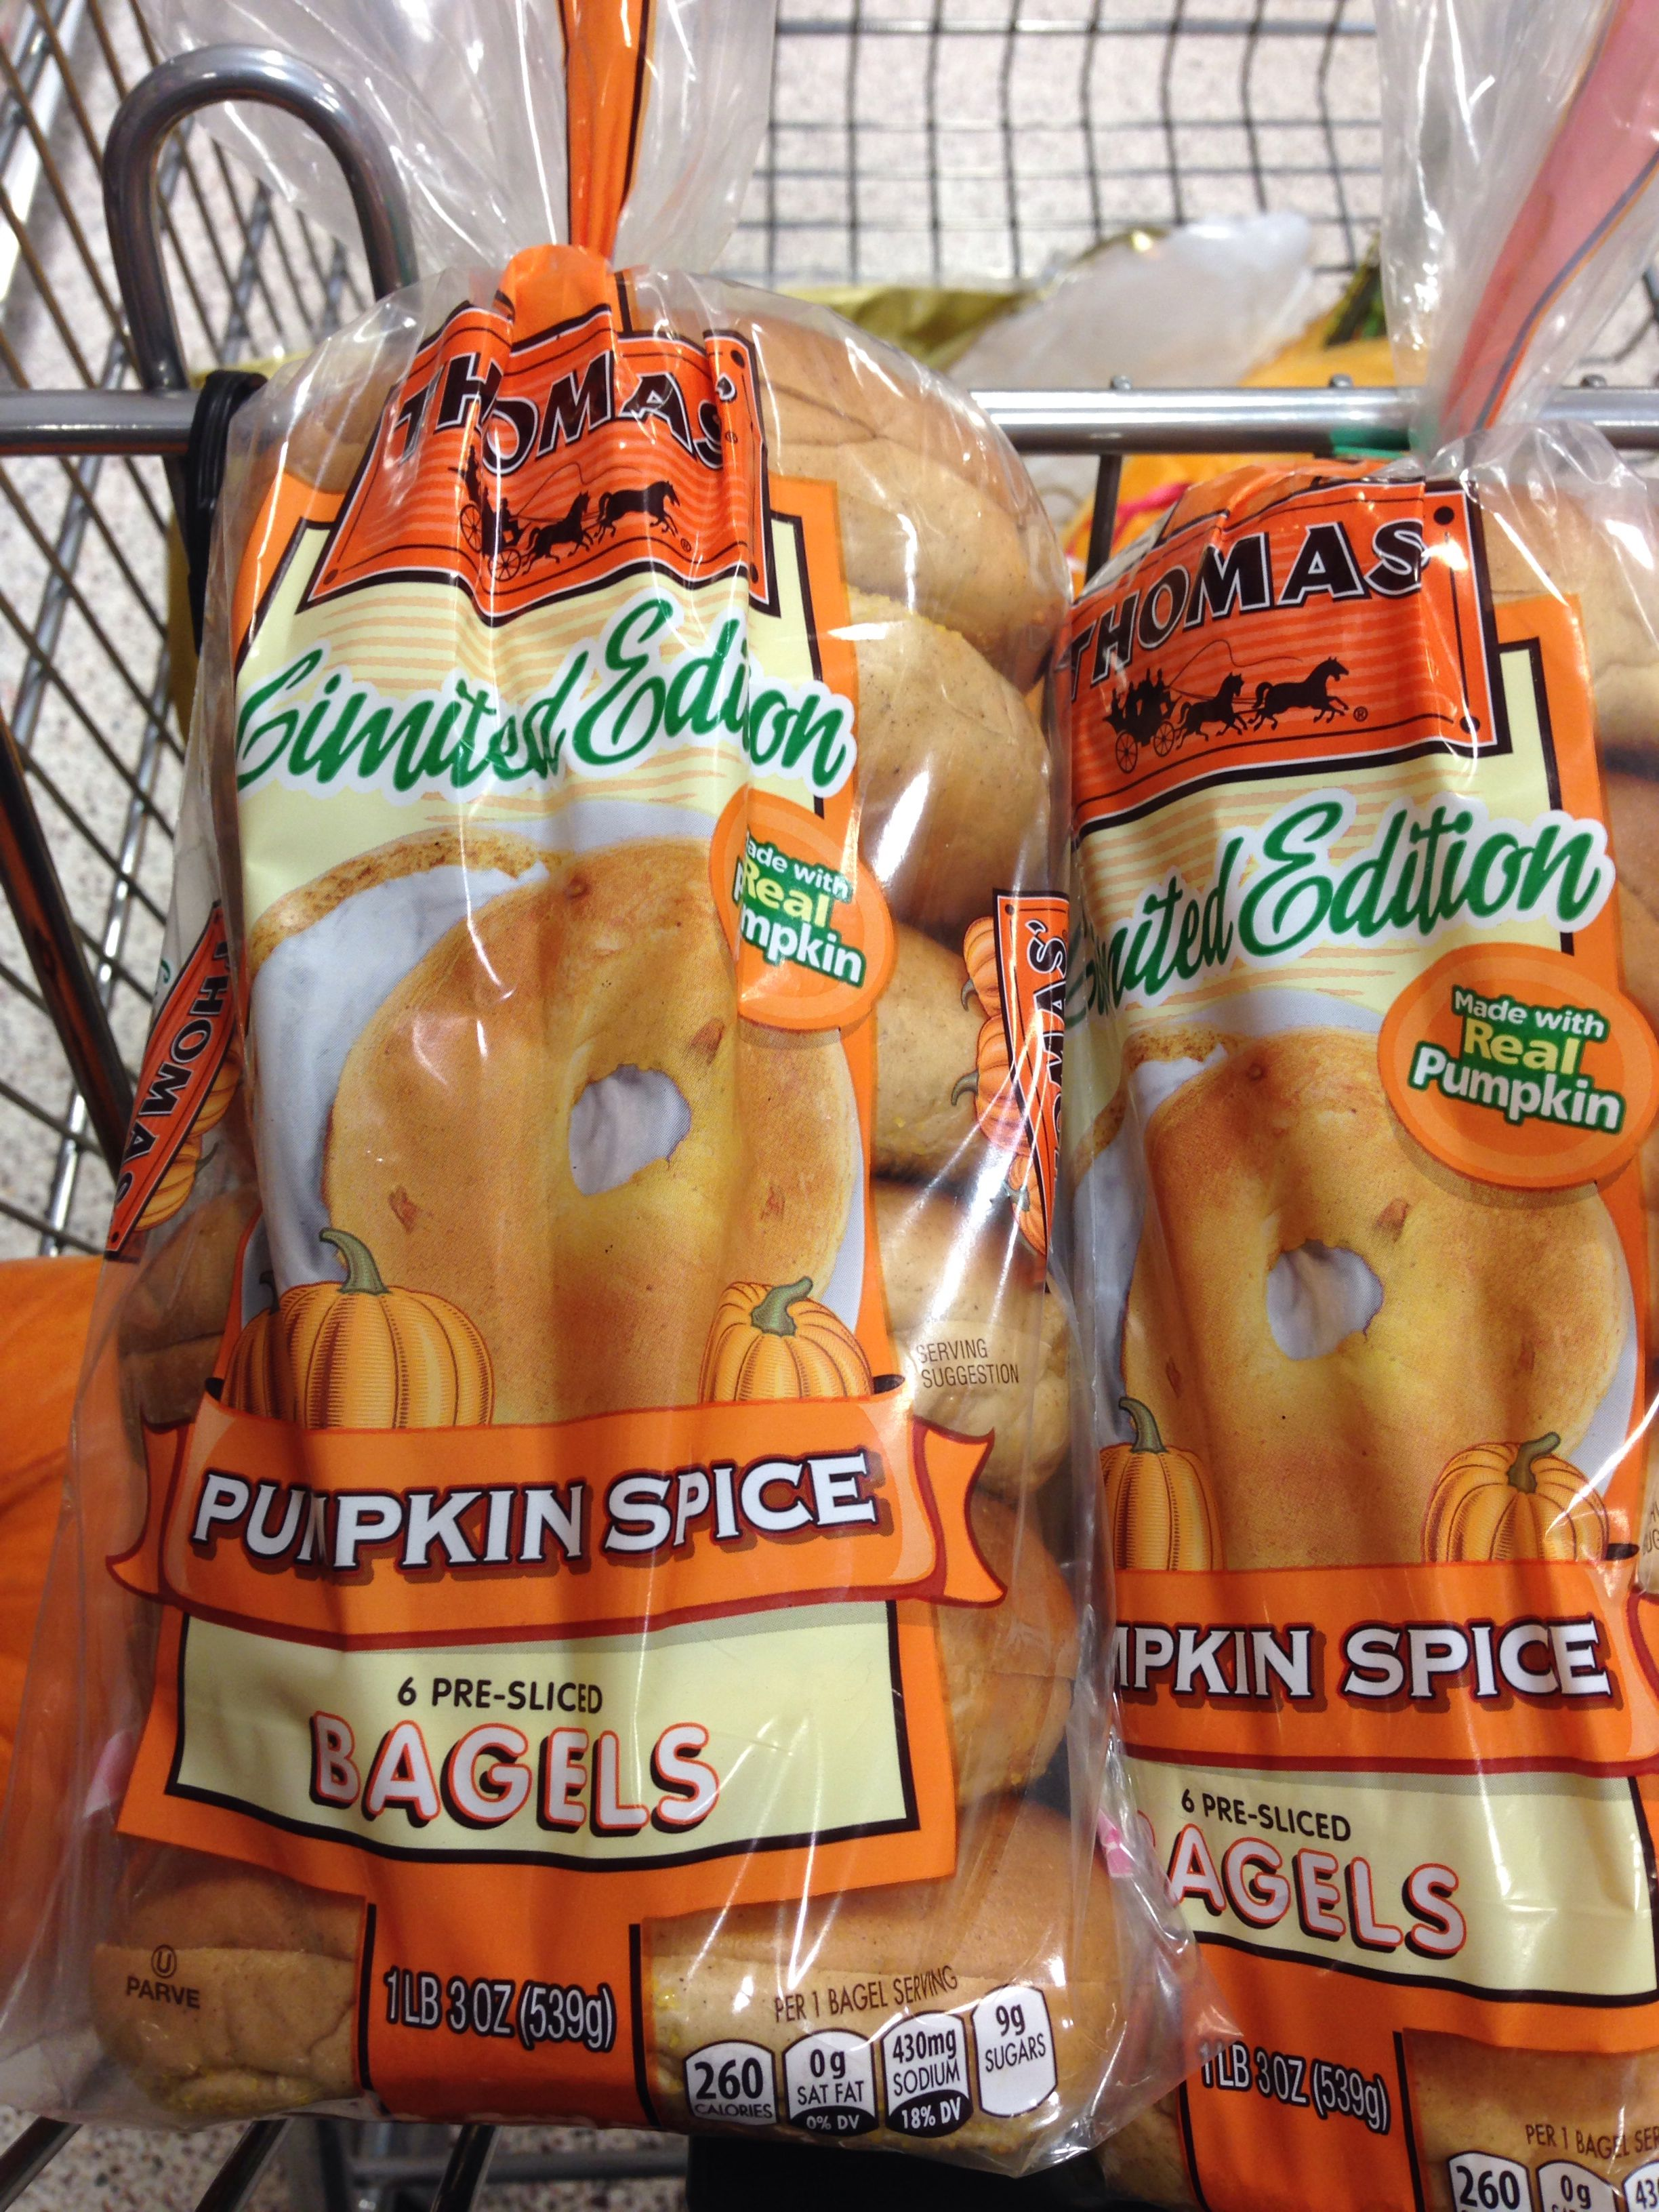 Thomas Pumpkin Spice Bagels. These need to be out all year long